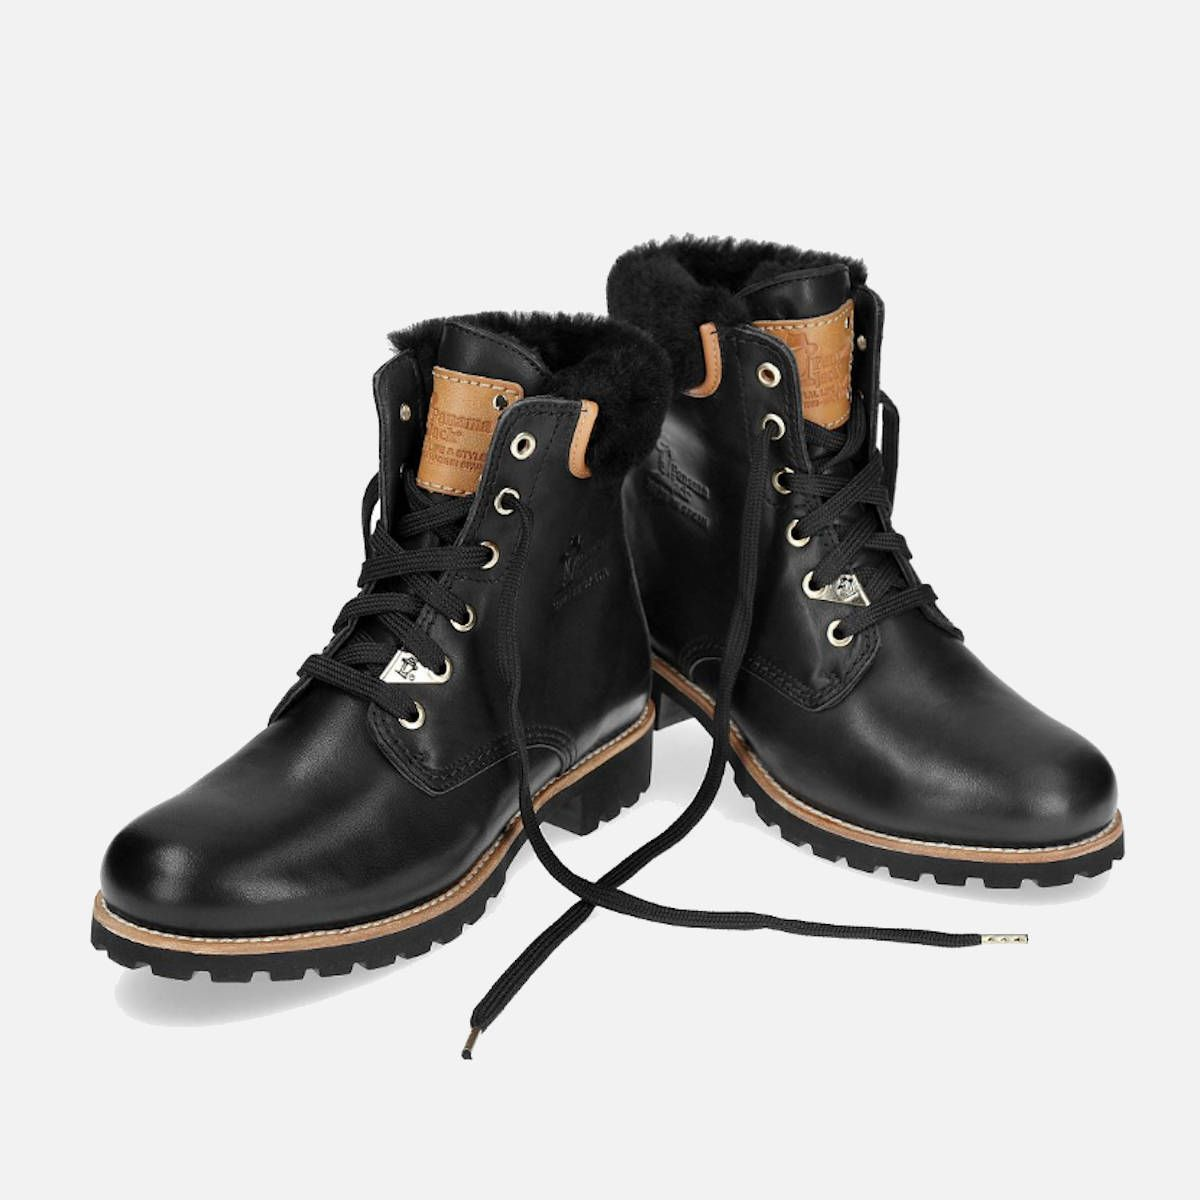 Panama Jack 03 Igloo Travelling Boots in Black Leather